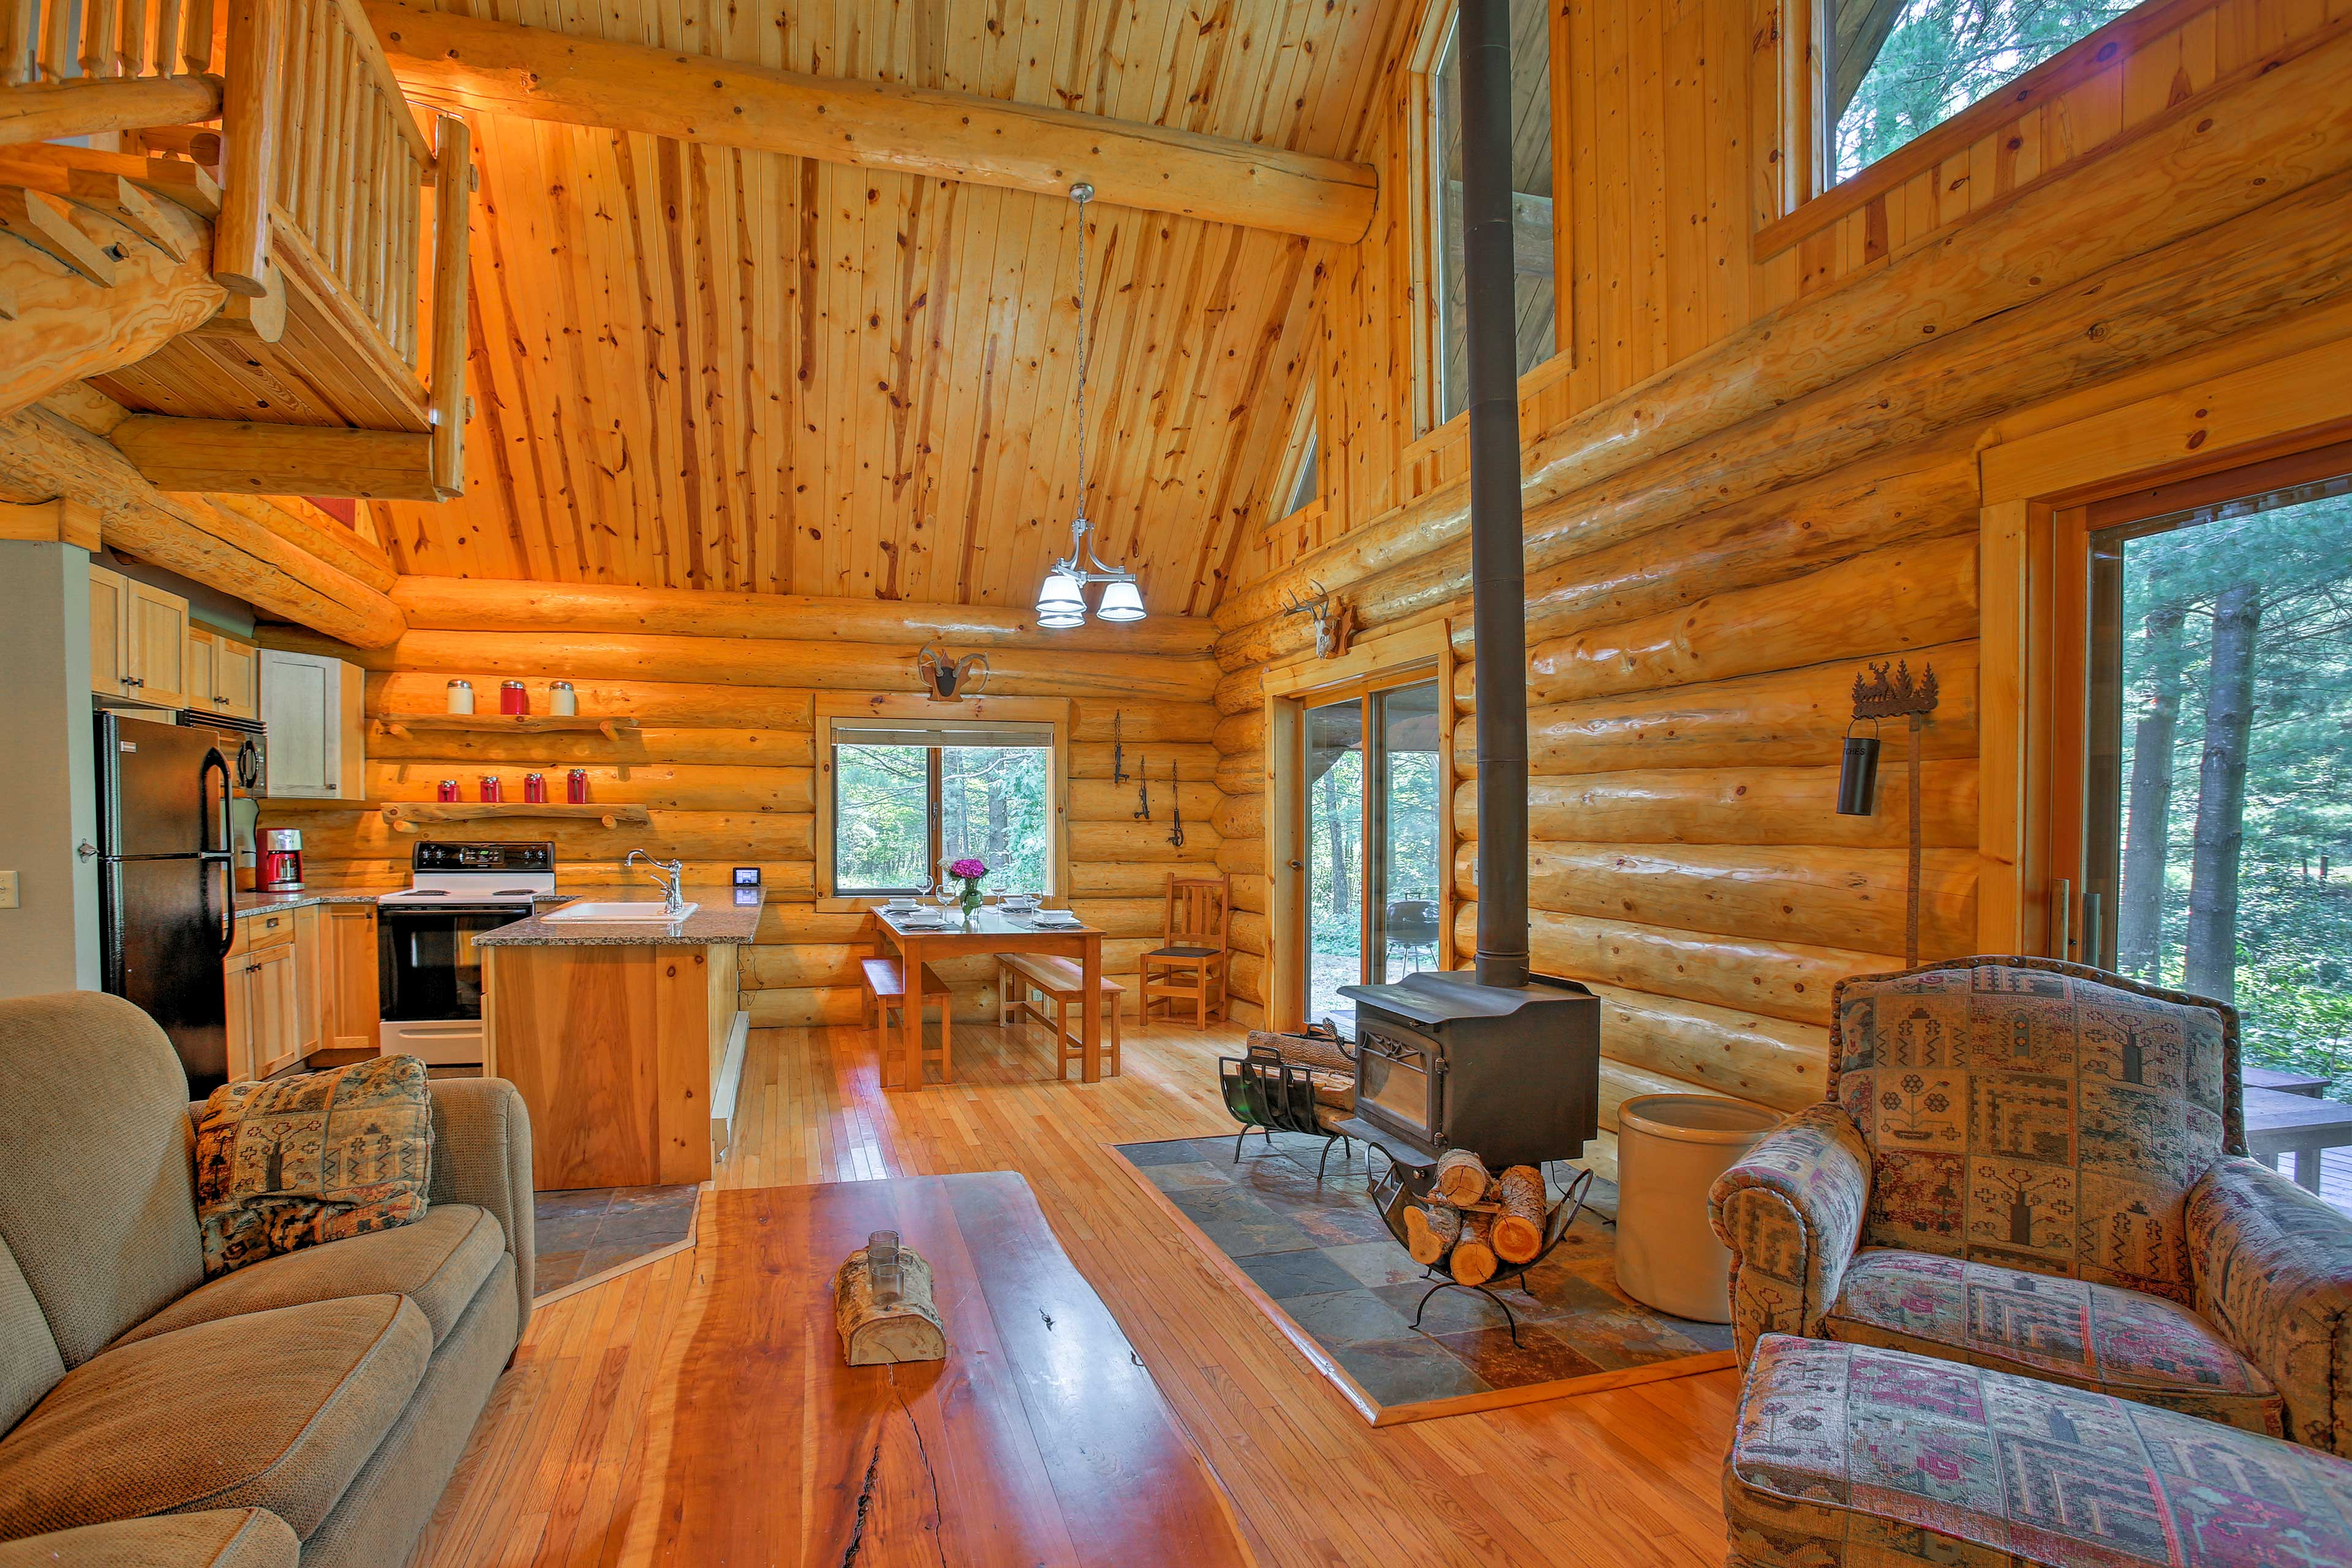 This stunning cabin has 2 bedrooms and 1 bathroom.